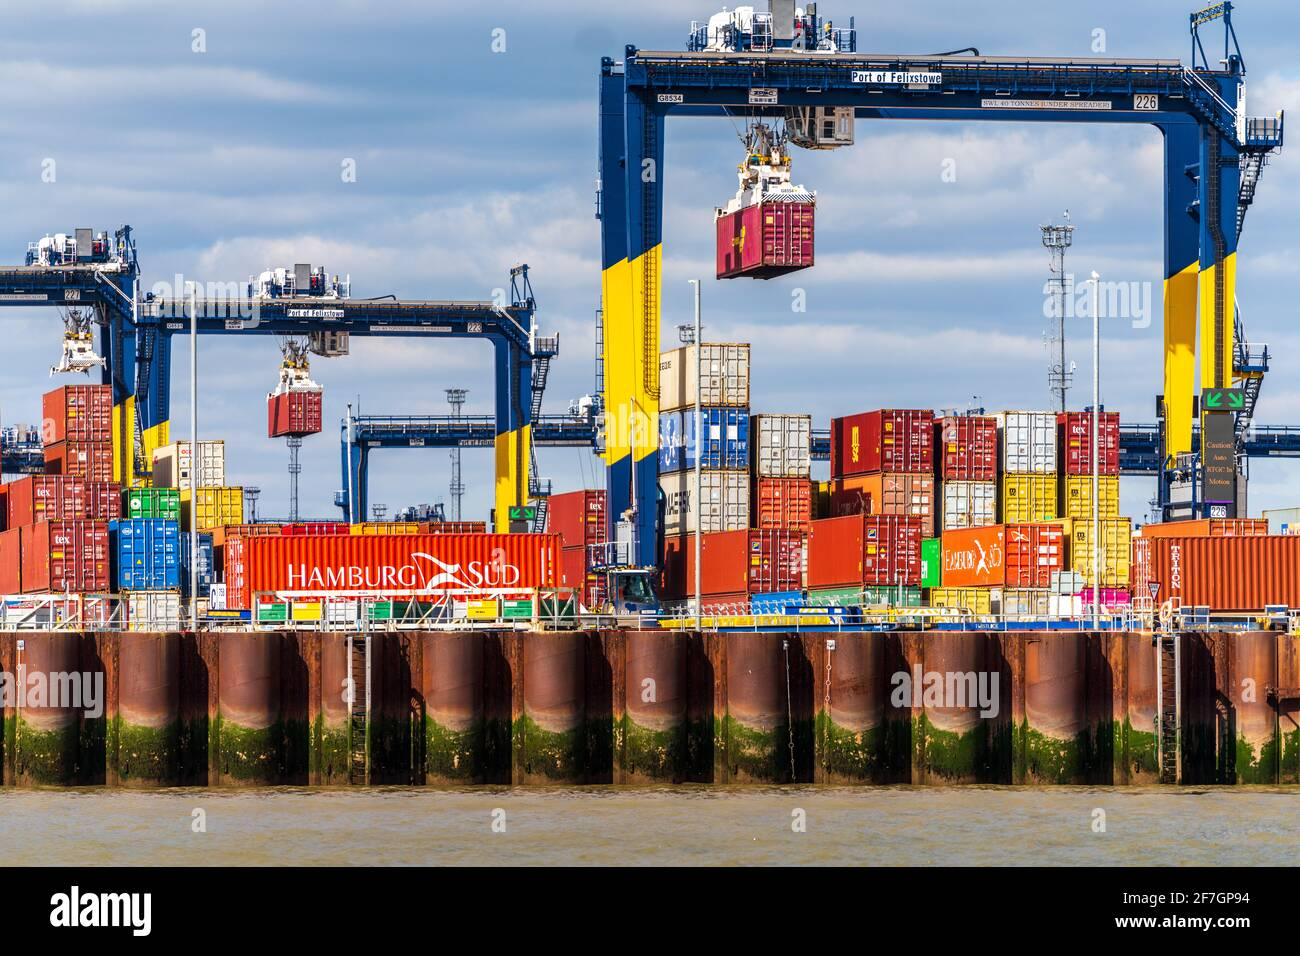 Global Britain UK Trade, UK Container Trade - UK Container Port - Shipping containers being stored at Felixstowe Port, the UK's largest container port Stock Photo